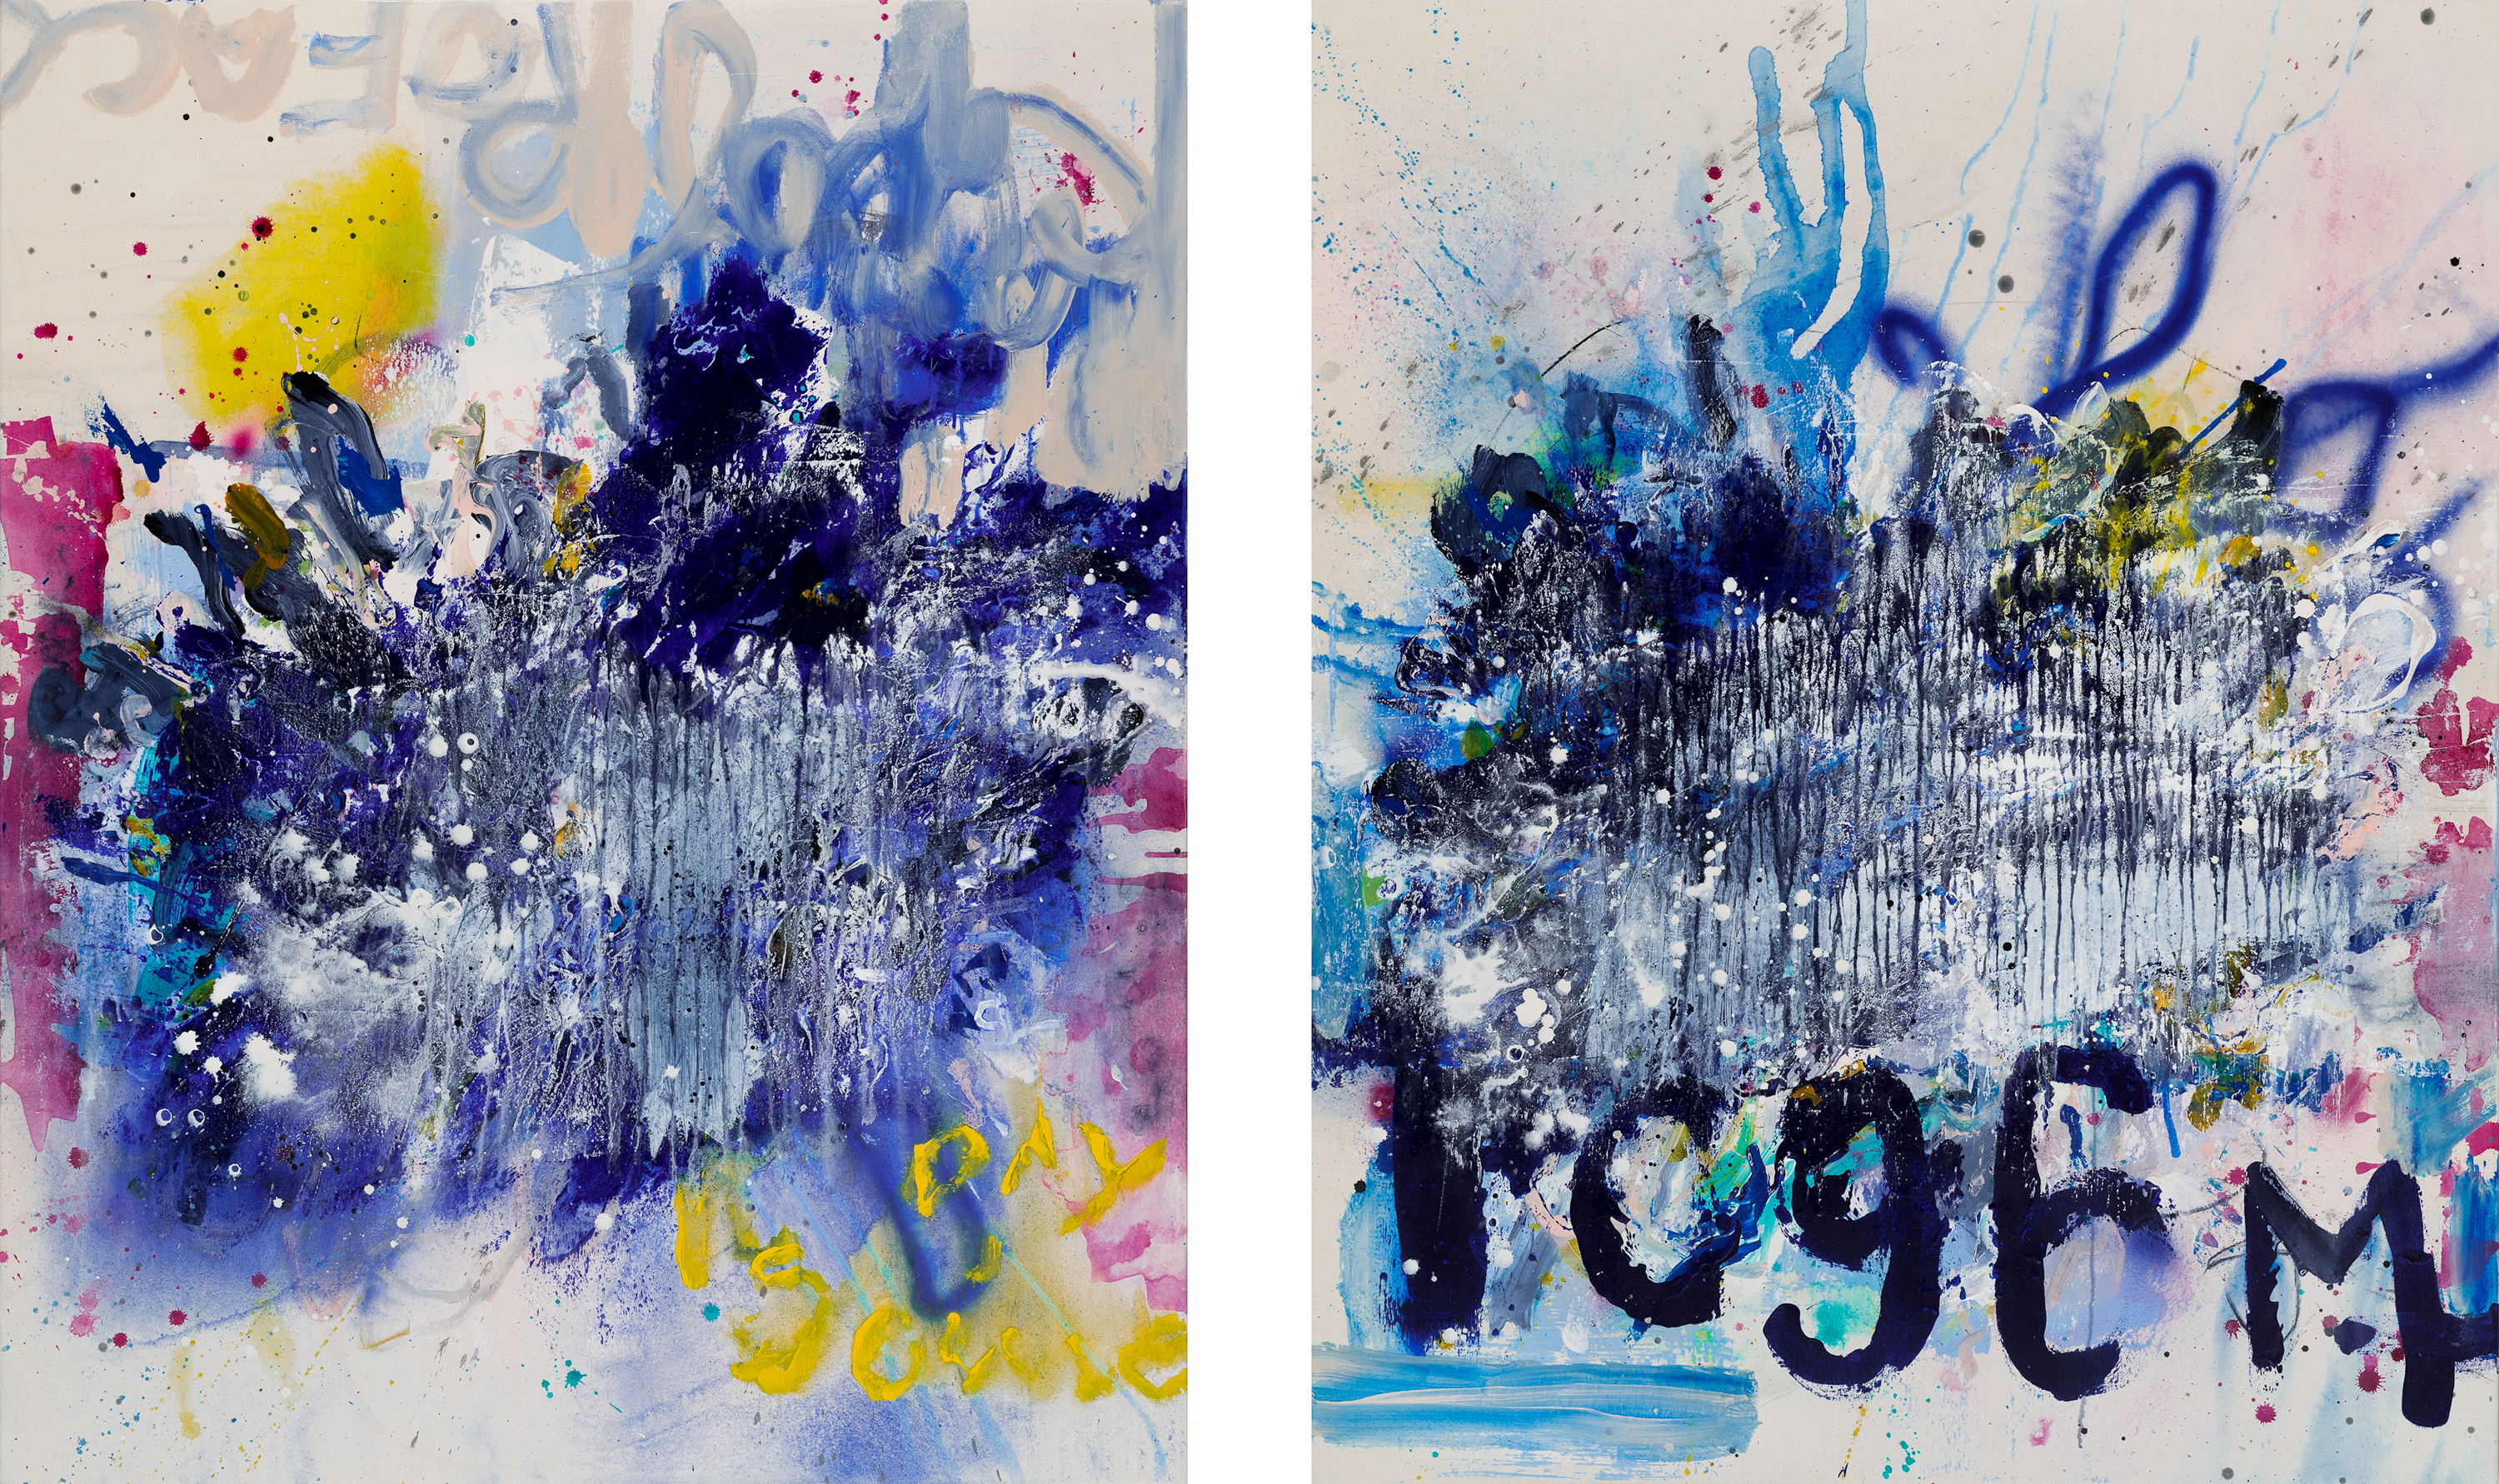 Large contemporary abstract diptych painting; original oversized blue modern urban industrial art with a graffiti / street edge